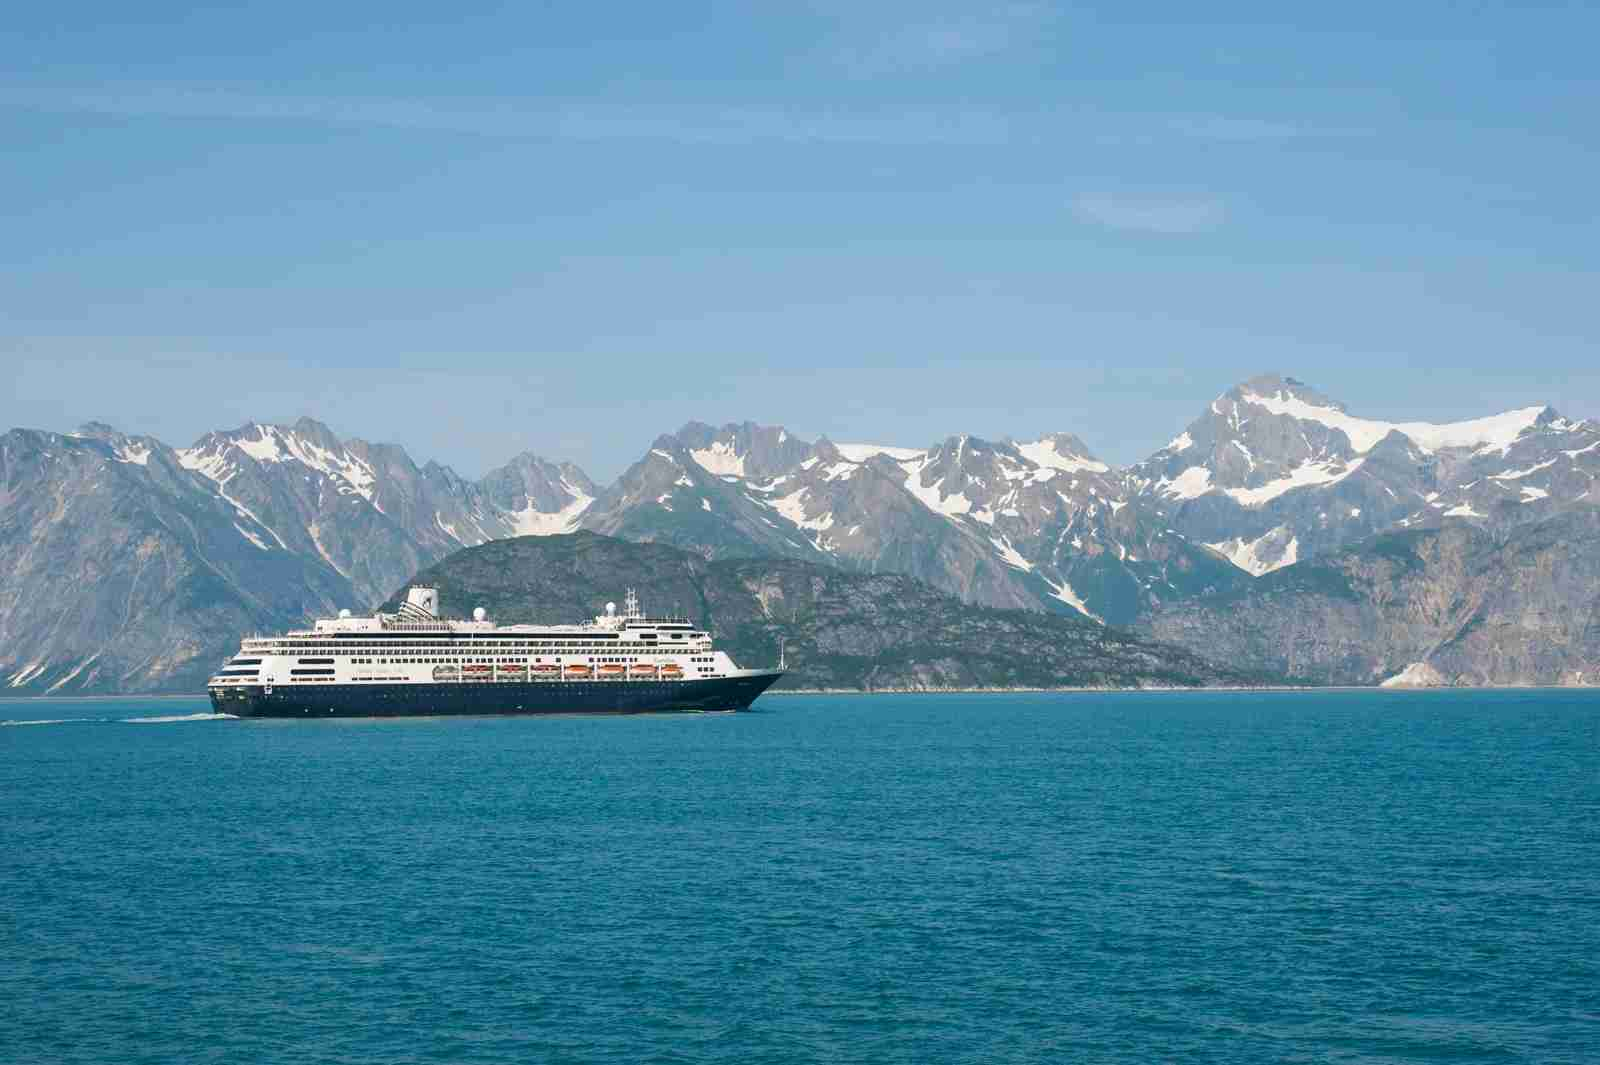 Holland America cruise ship Ms Zaandam in Glacier Bay National Park, Alaska. (Photo by Wolfgang Kaehler/LightRocket via Getty Images)